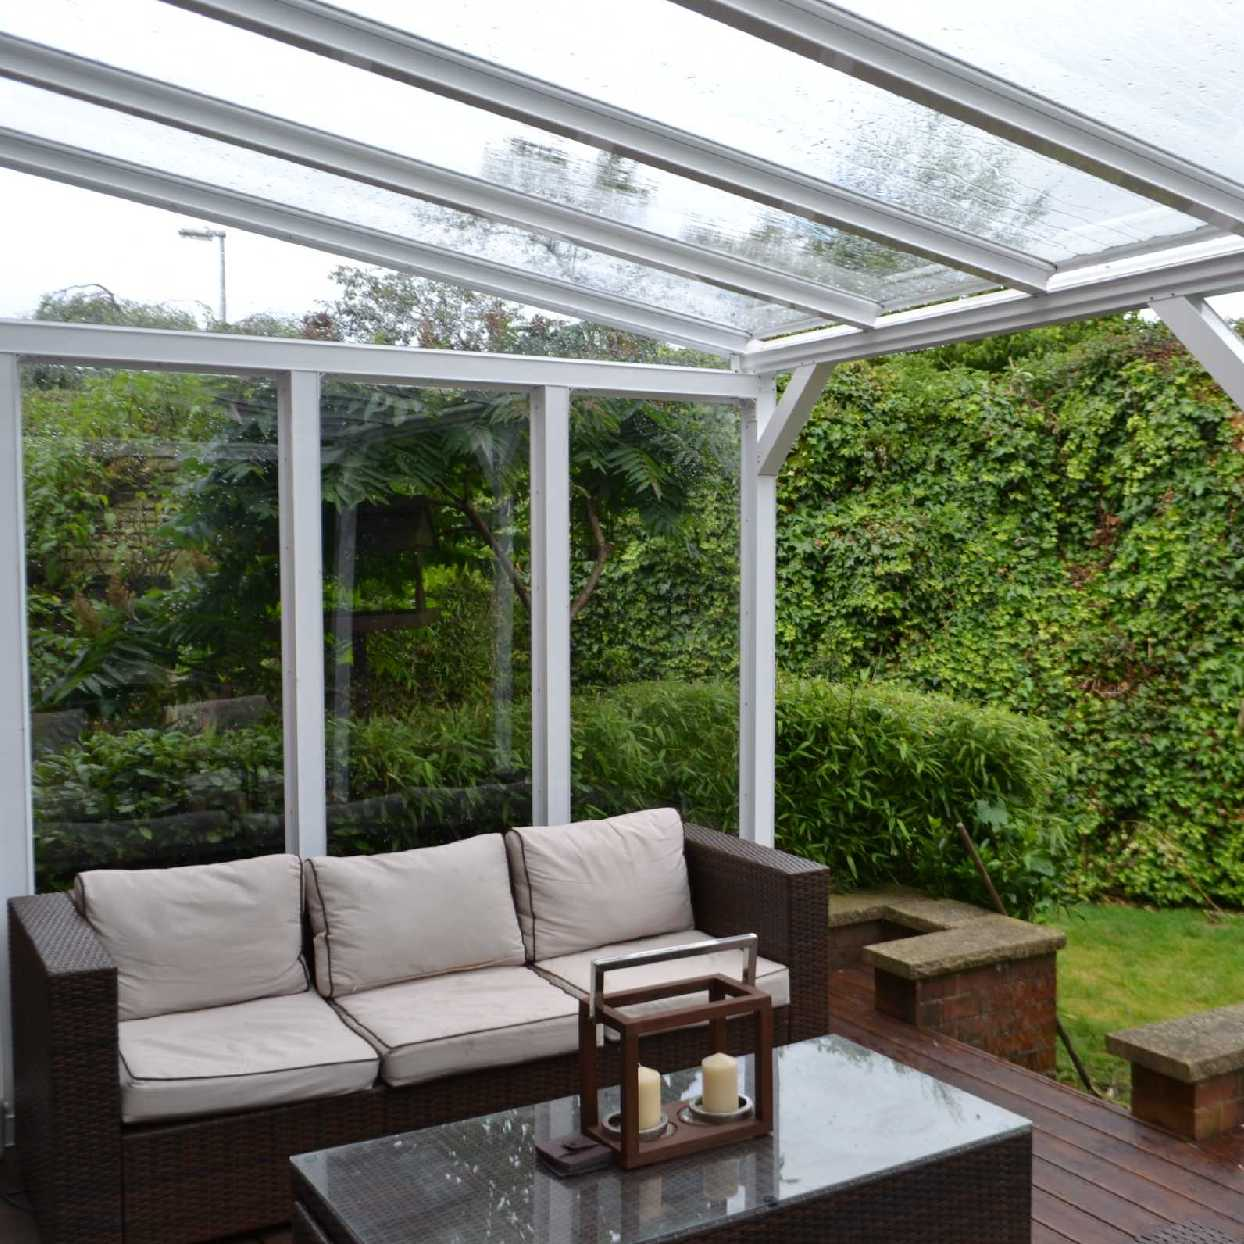 Omega Smart White Lean-To Canopy with 6mm Glass Clear Plate Polycarbonate Glazing - 3.5m (W) x 1.5m (P), (3) Supporting Posts